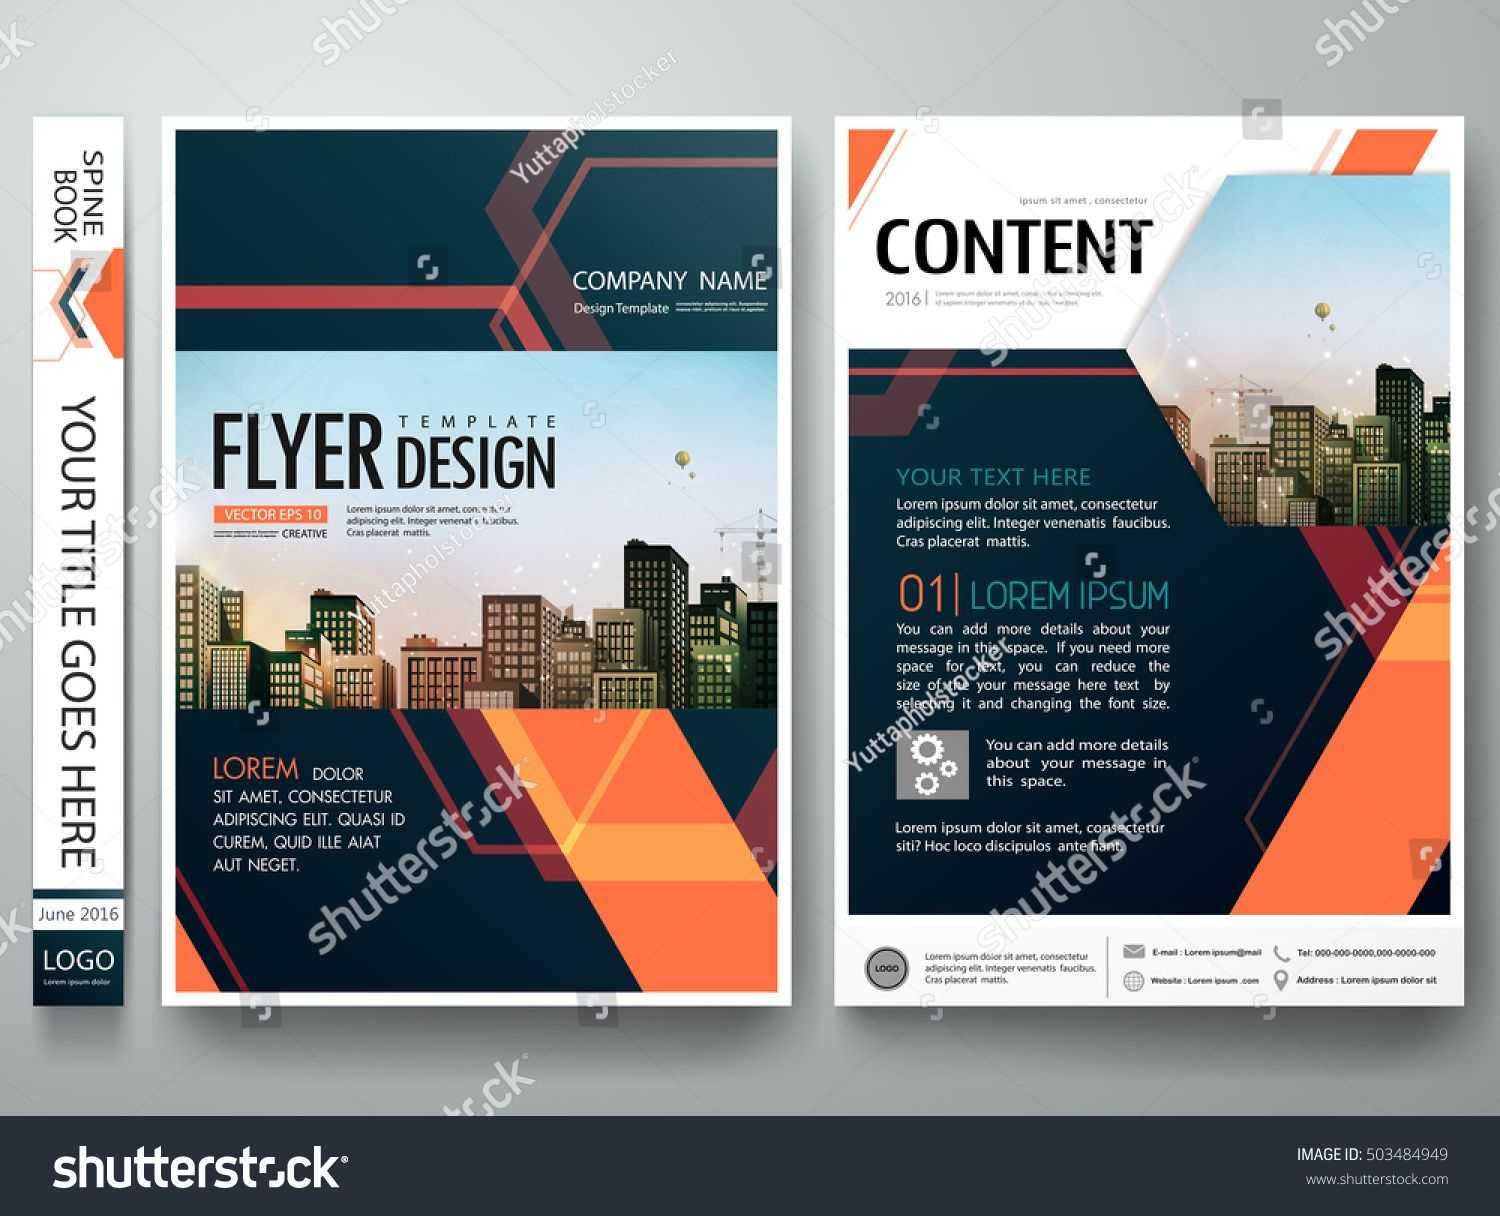 Flyers Design Template Vector. Abstract Blue Cover Book for Engineering Brochure Templates